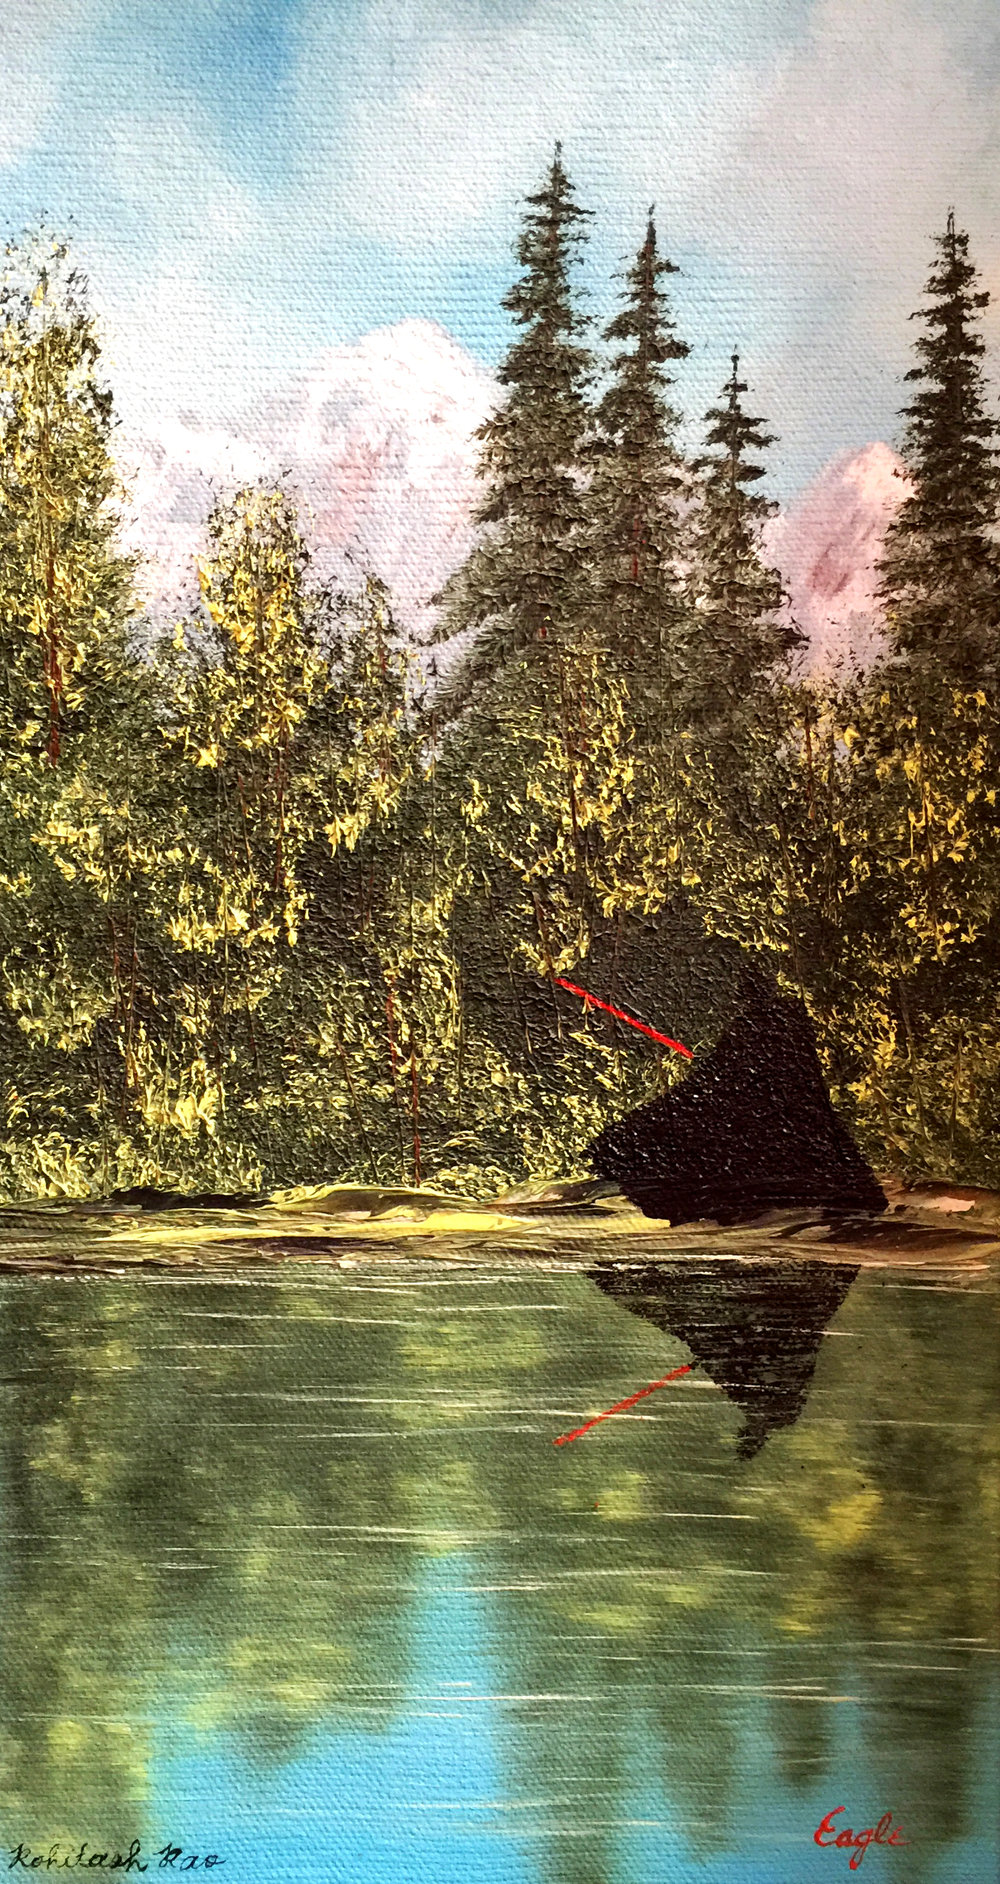 DARTH VADER IN A THRIFT STORE PAINTING (one in a series)